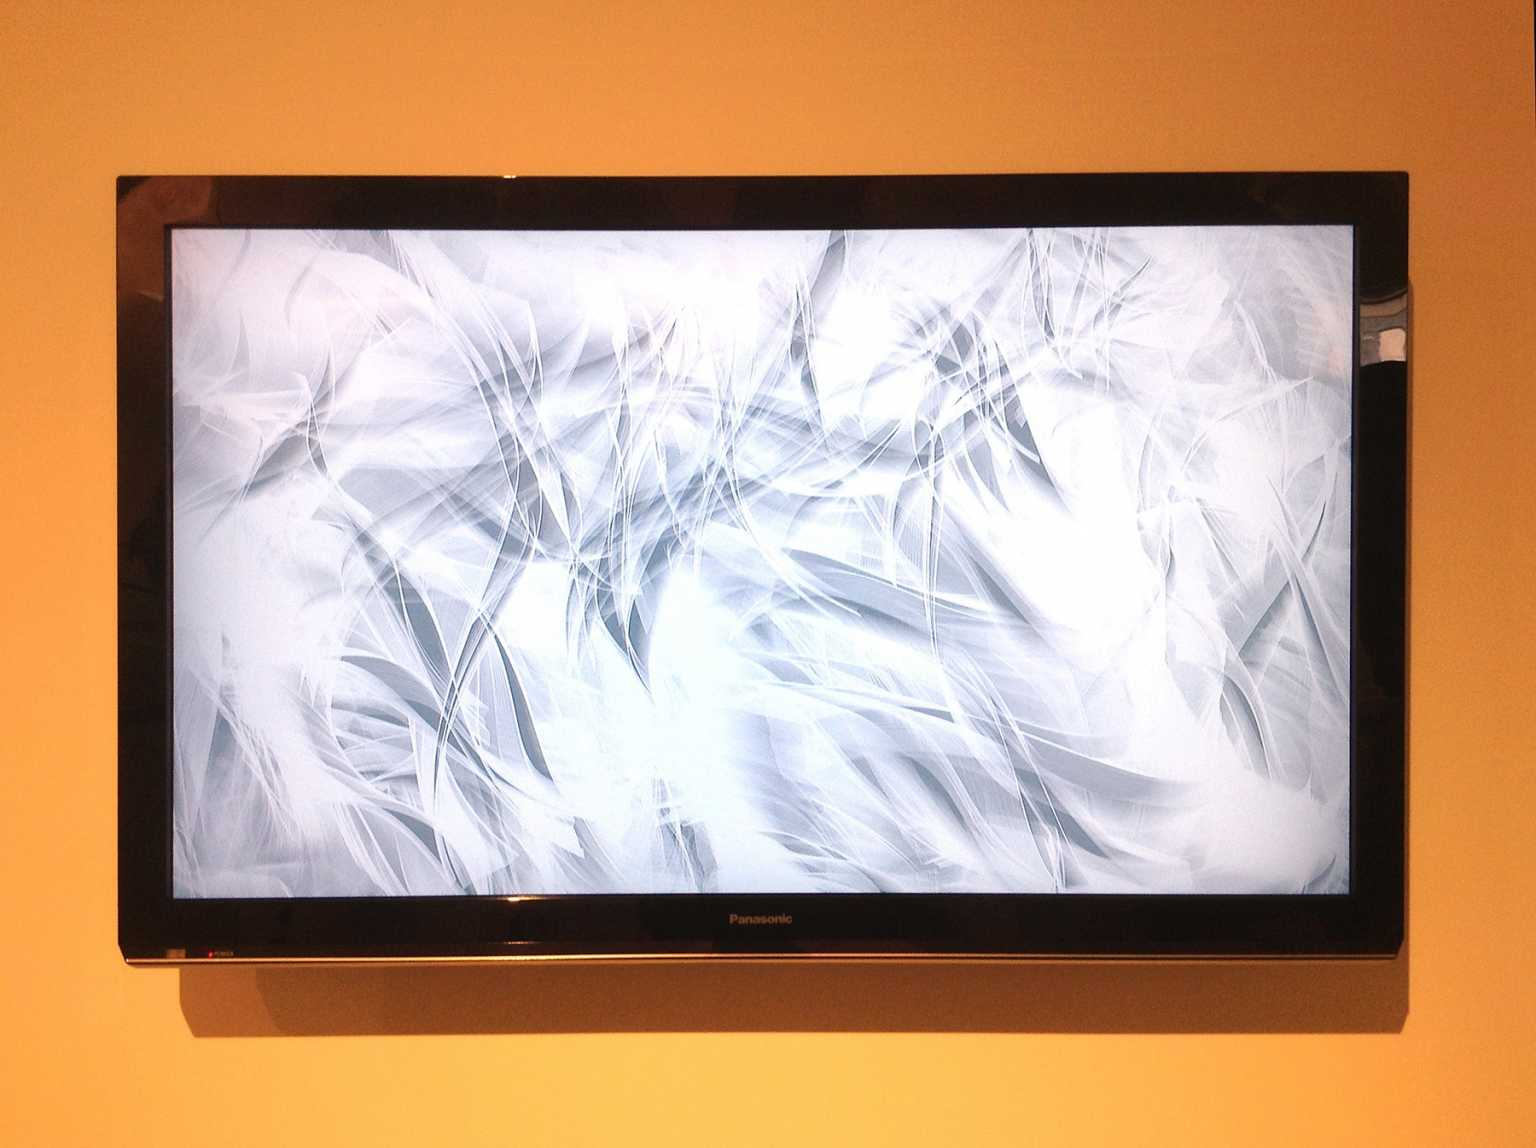 Installation view of Air Current(s), a live, animated wind drawing